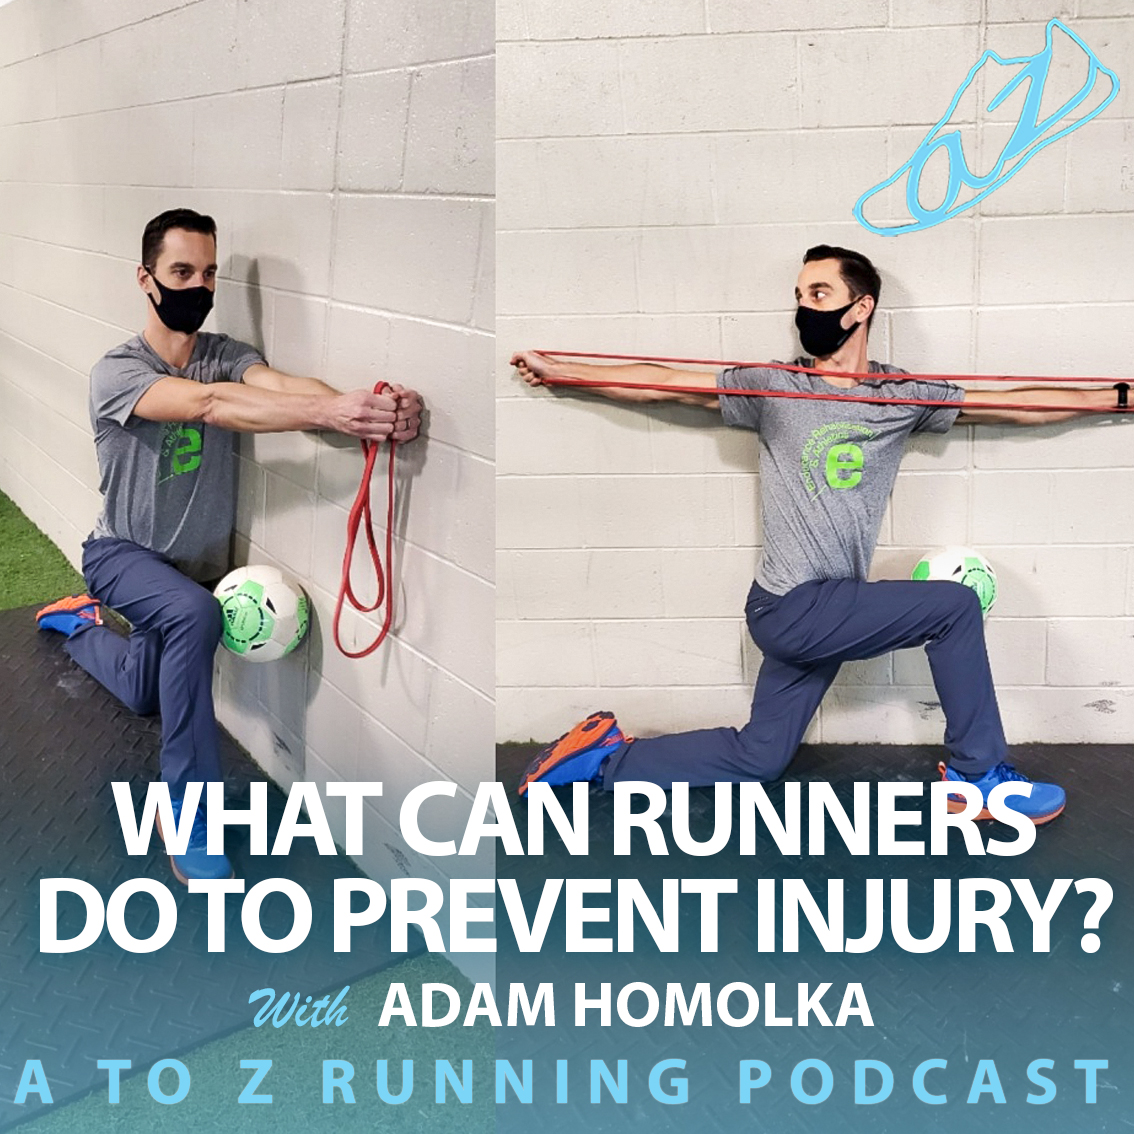 What can runners do to prevent injury